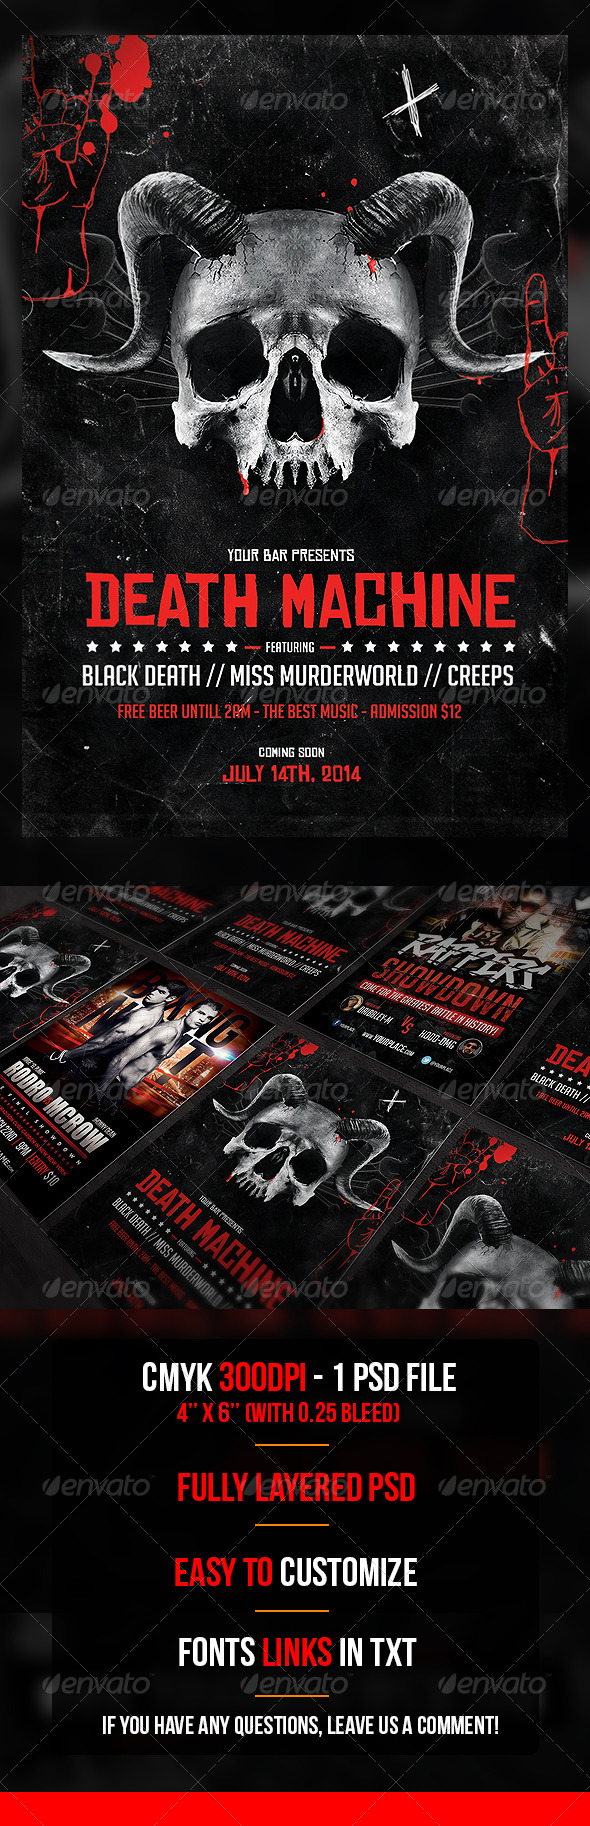 Death Machine Flyer Template - Flyers Print Templates